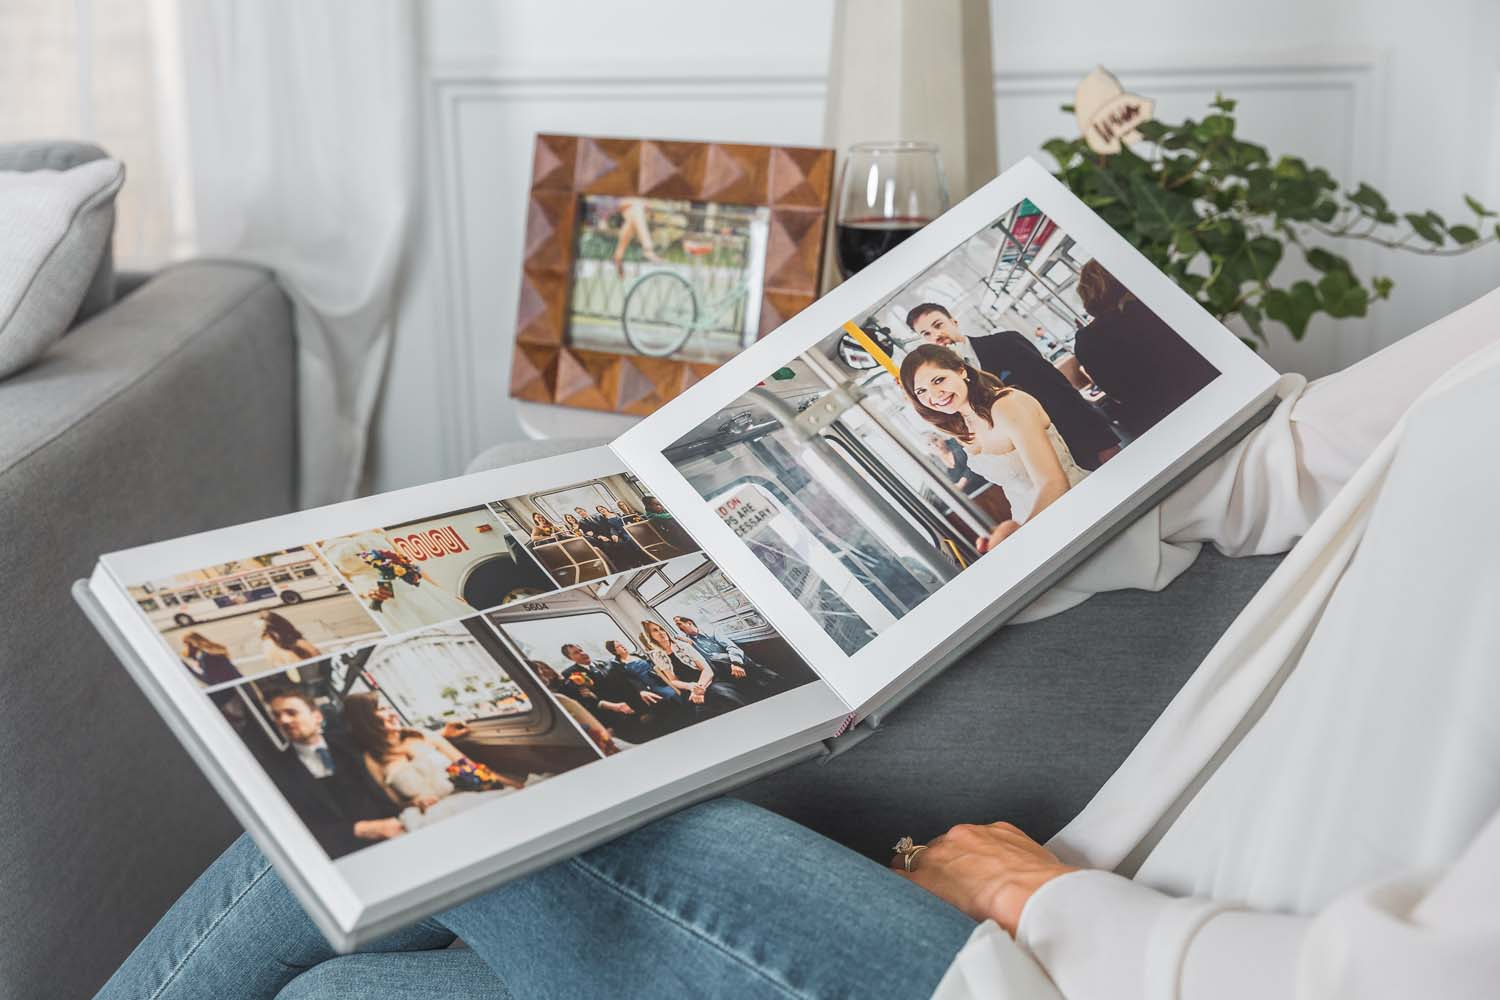 medium close up of a flat lay wedding album open on a woman's lap by Albums Remembered